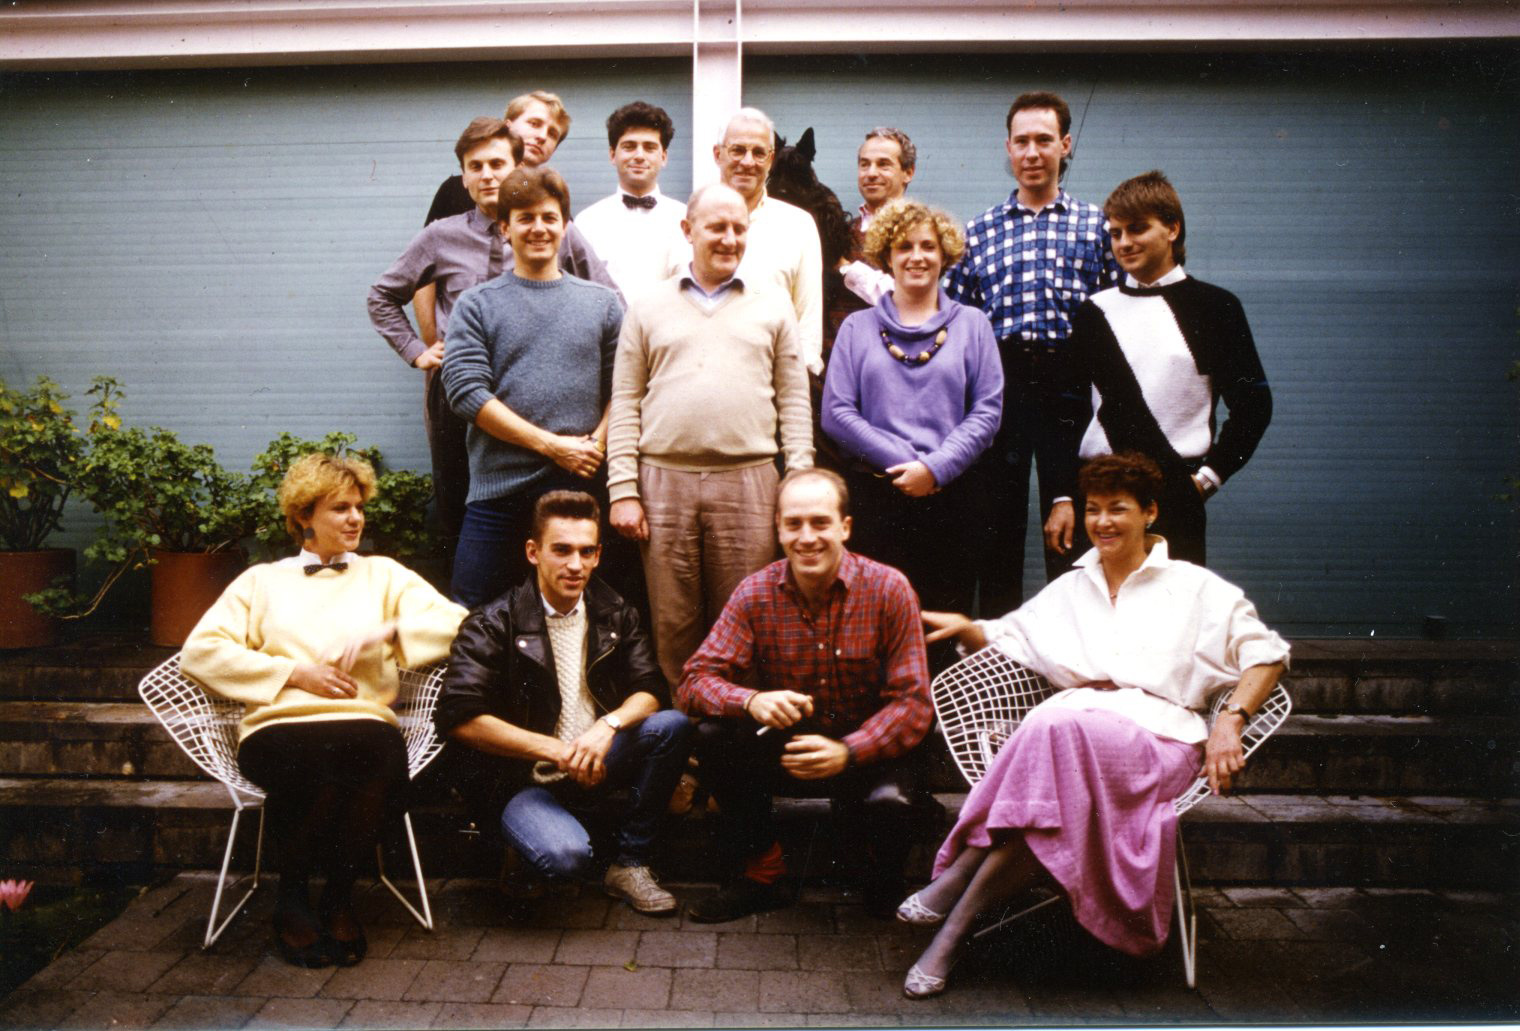 The Marsh Freedman team in 1988. Sam Marshall is on the left, second from the back.George is holding one of his much loved Scottie dogs. Photo courtesy MFA.